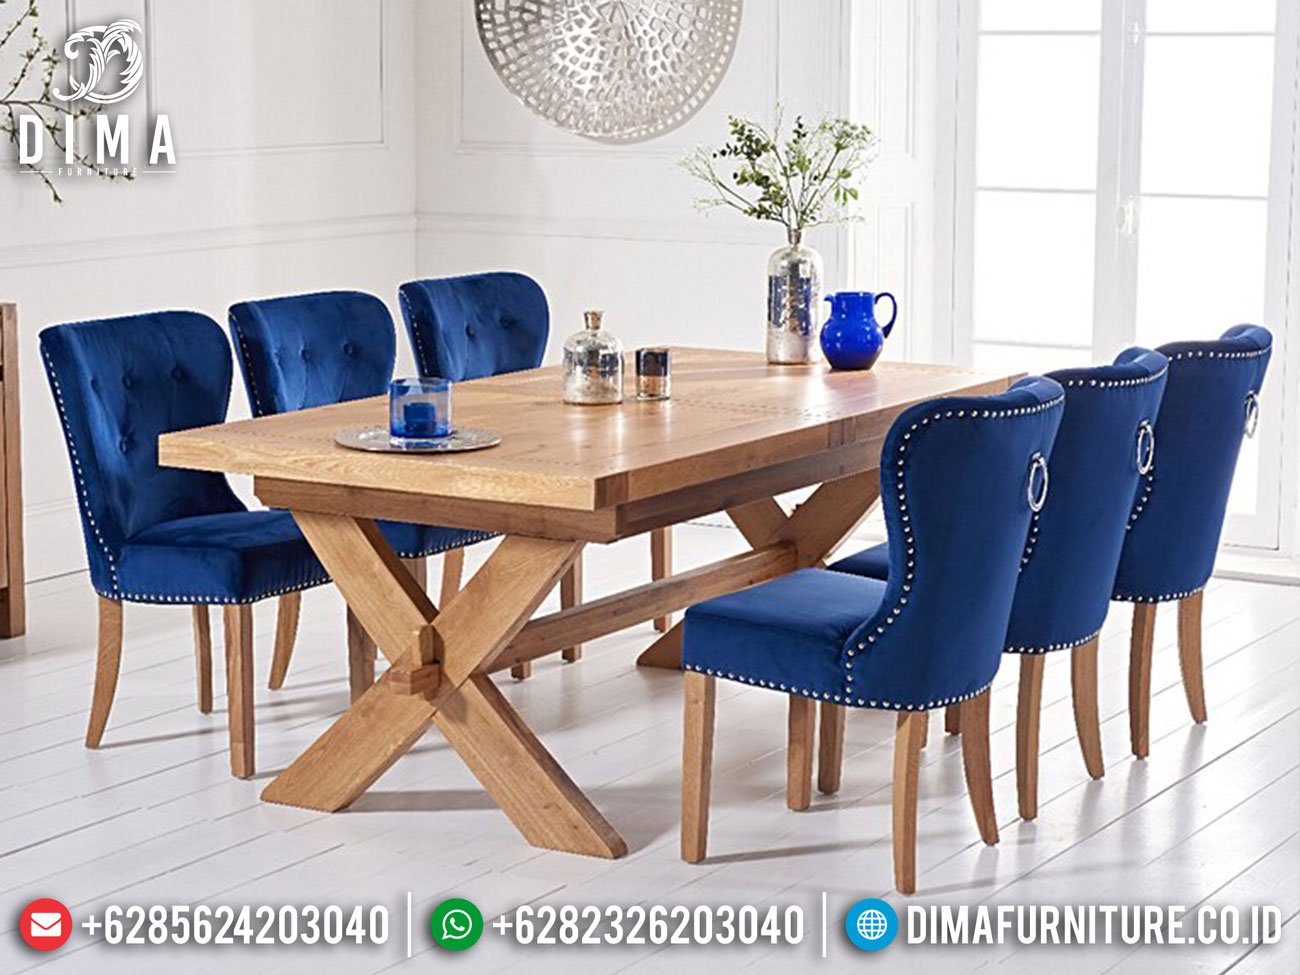 Hilarious Style Meja Makan Minimalis Terbaru Furniture Jepara Luxury Classic Mm-1043